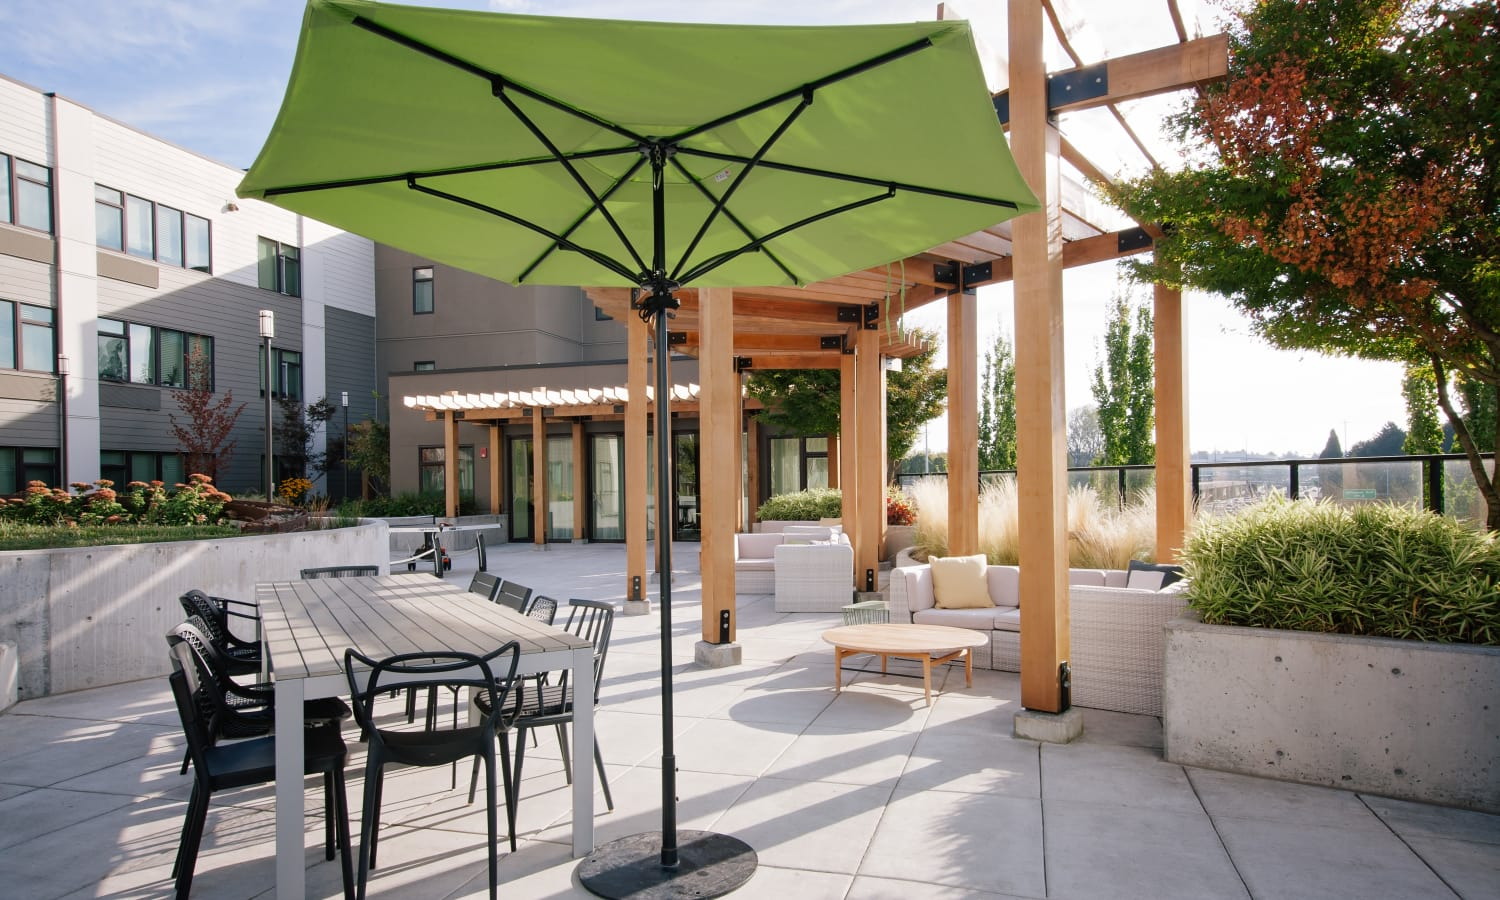 Plenty of comfortable outdoor seating options in common areas at Grant Park Village in Portland, OR